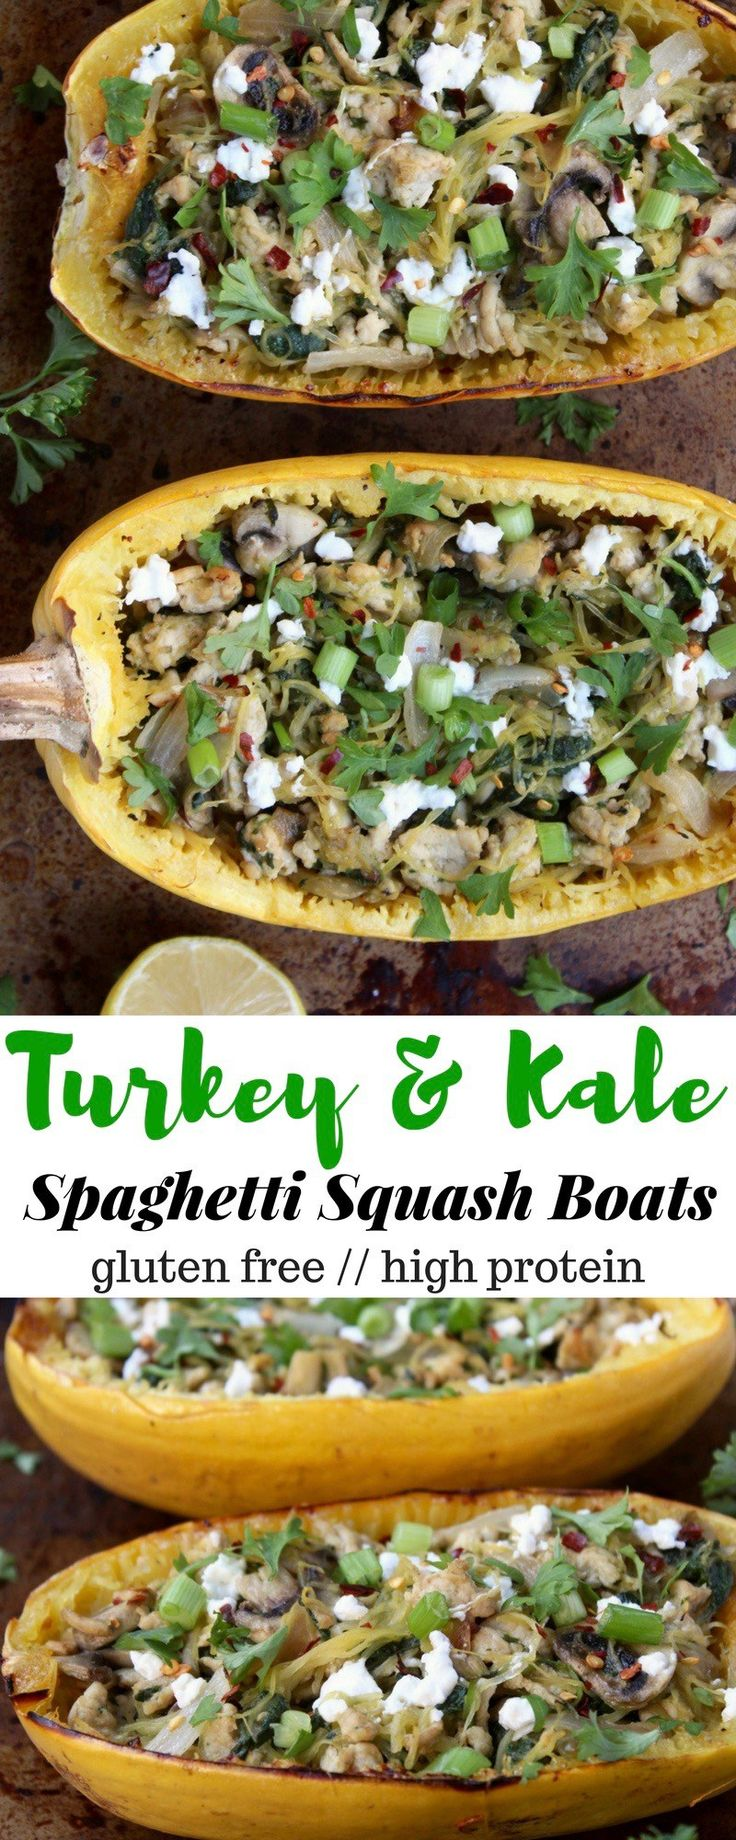 An easy weekday meal, these Turkey & Kale Spaghetti Squash Boats pack veggies, healthy carbs and fats, and lots of protein for a satisfying and well balanced dinner - Eat the Gains